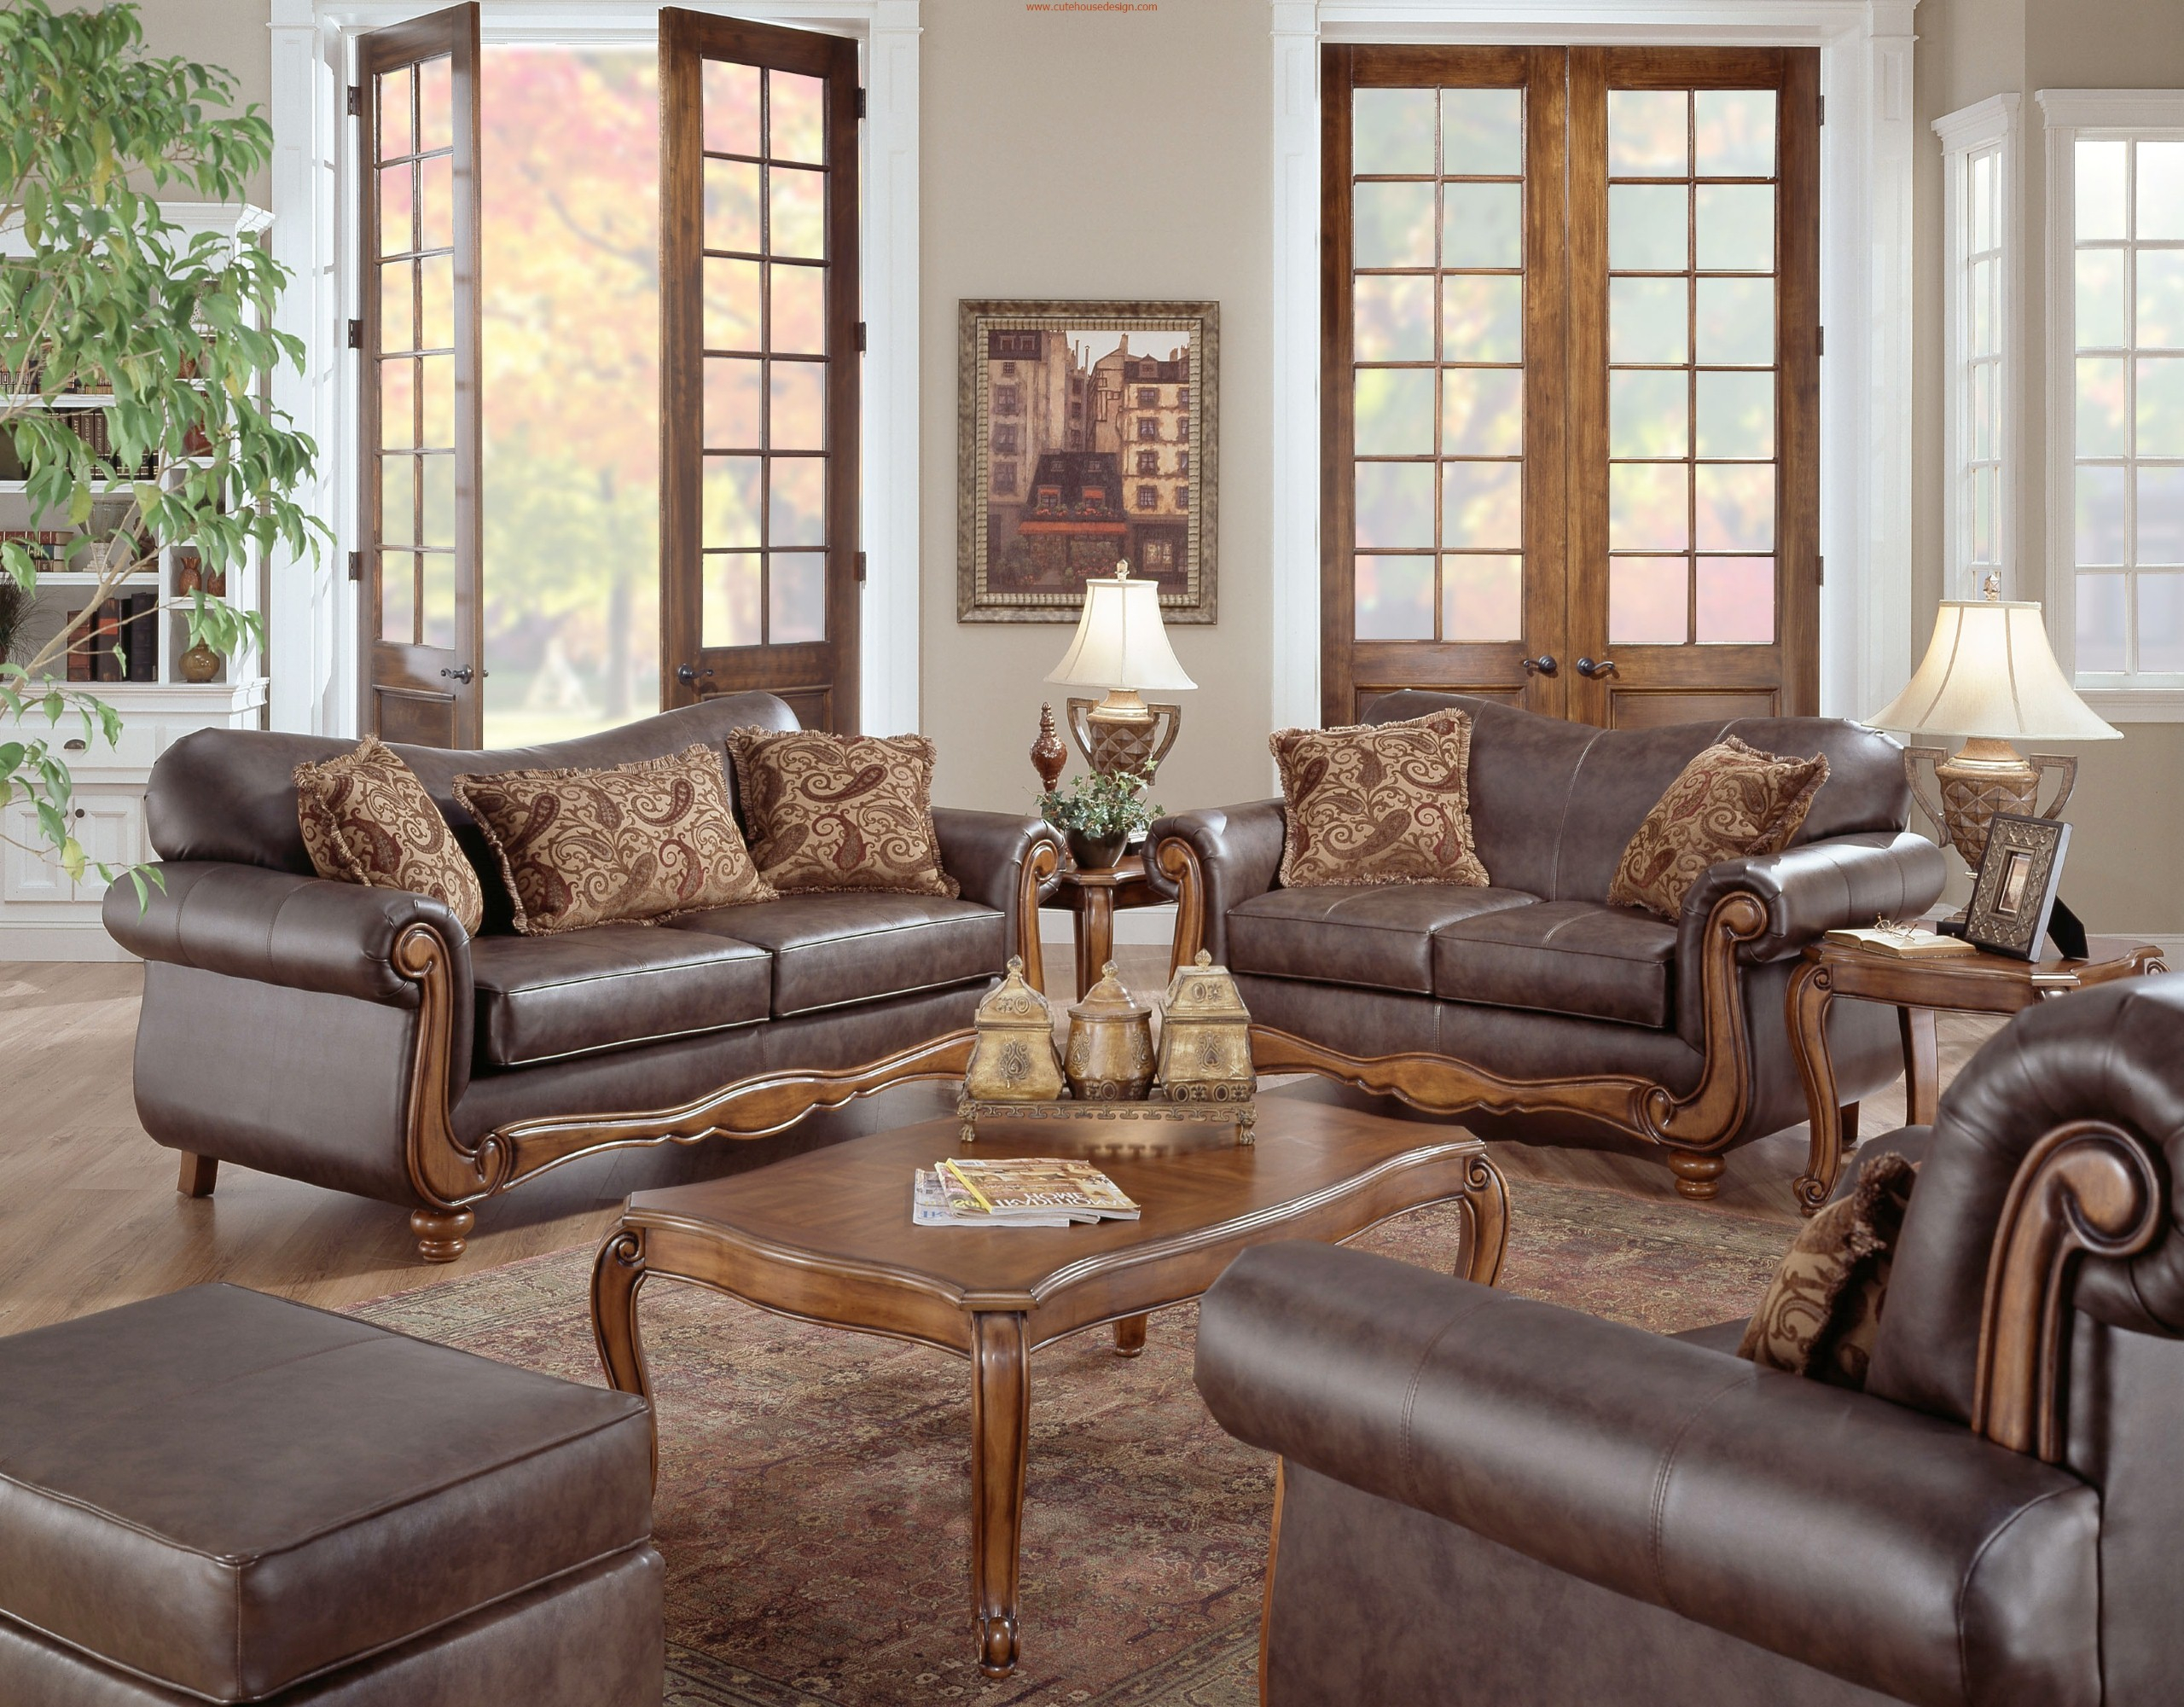 Ingenious Inspiration Rustic Living Room Set Stylish Design Rustic regarding Rustic Living Room Set